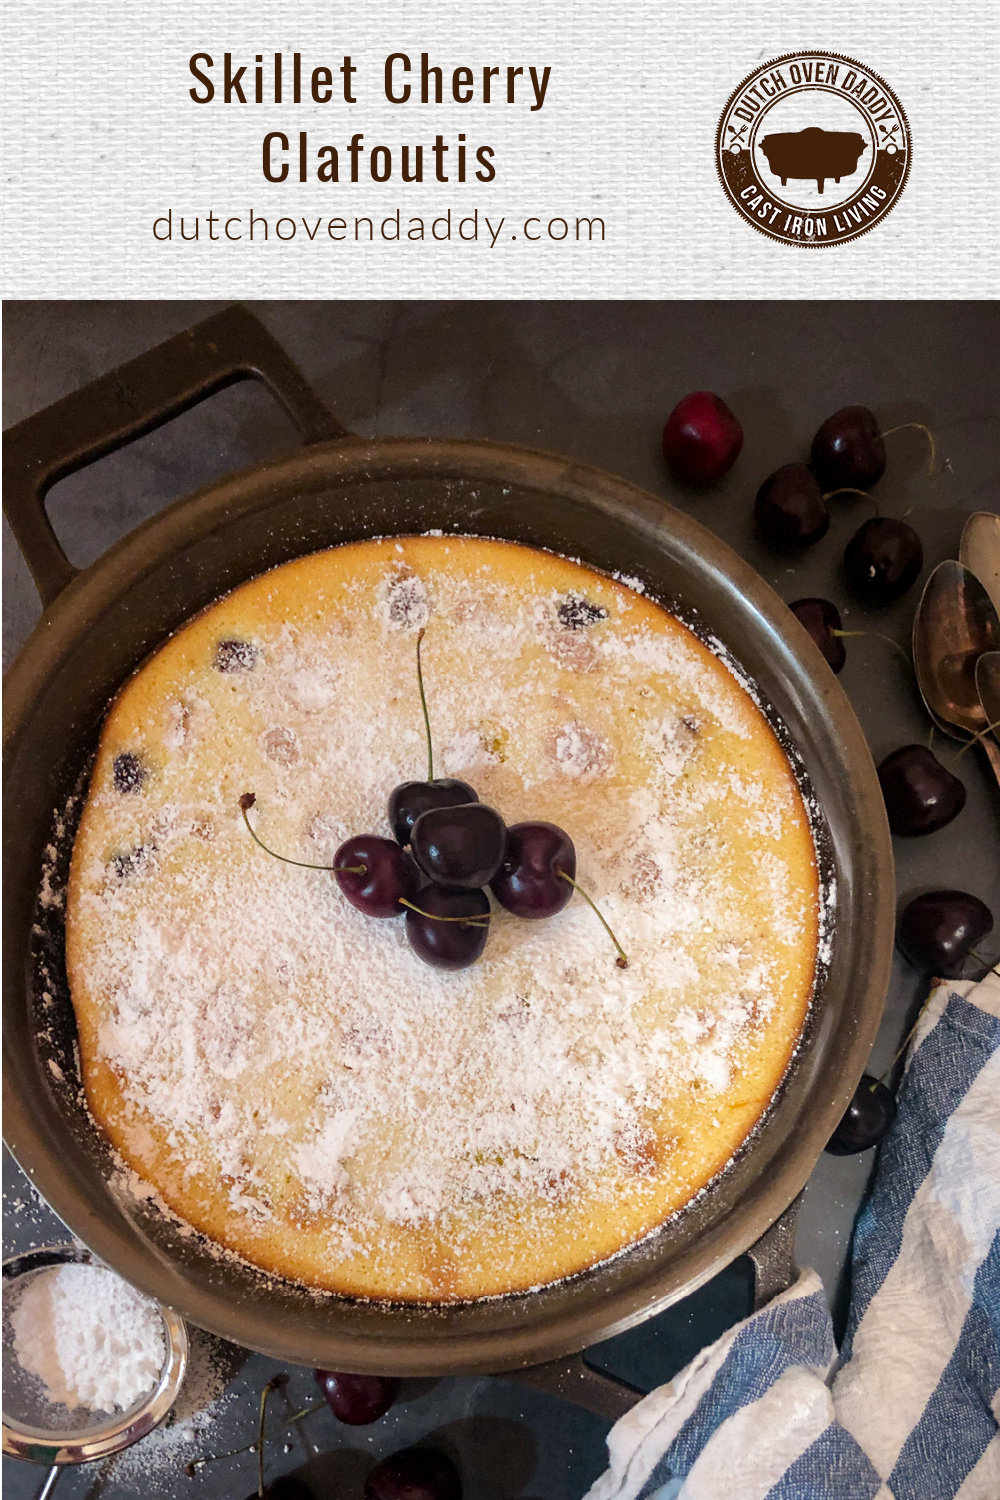 Cherry clafoutis in a cast iron skillet dusted with powdered sugar with fresh cherries as a garnish.